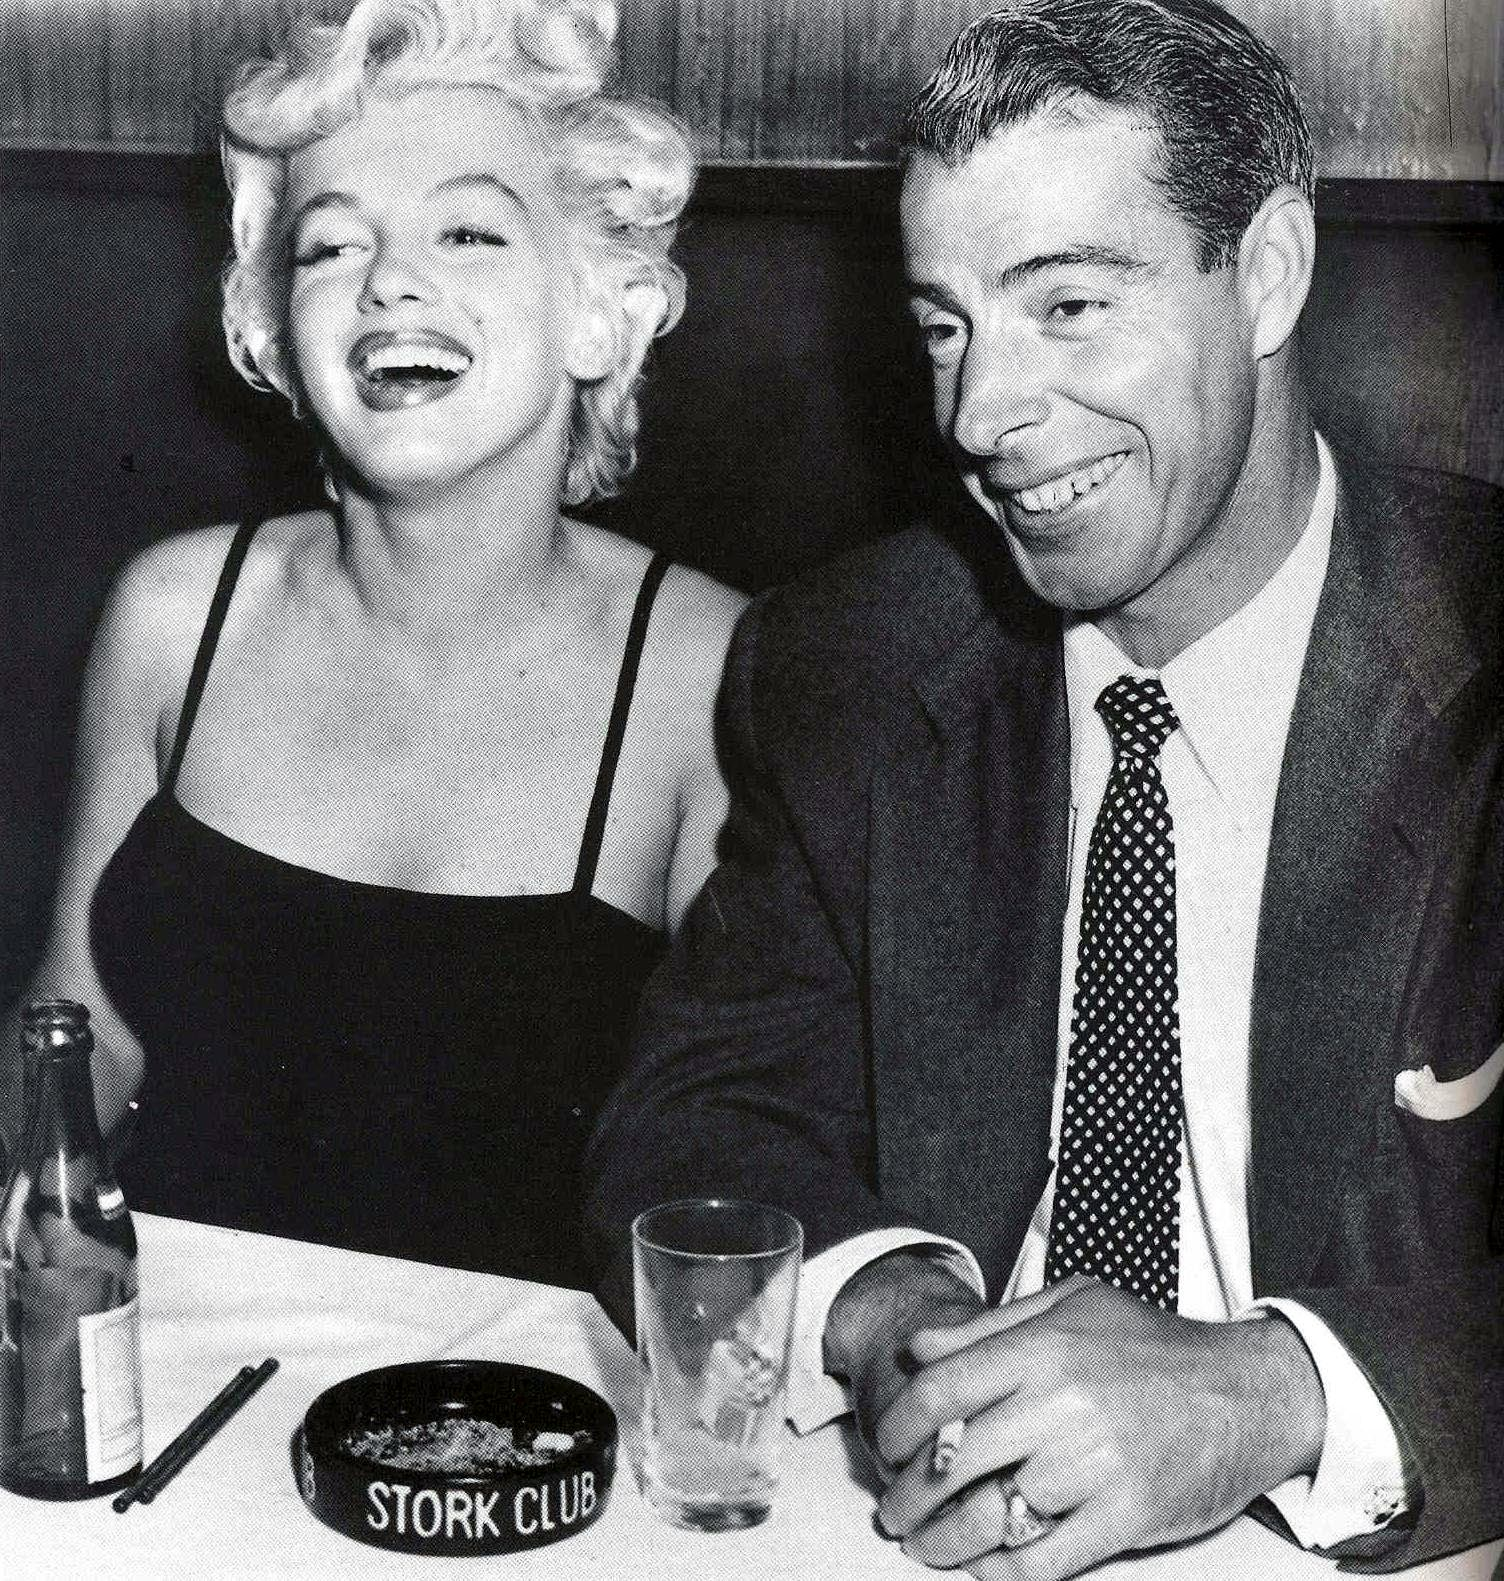 Marilyn Monroe and Joe DiMaggio at the Stork Club, 1952.